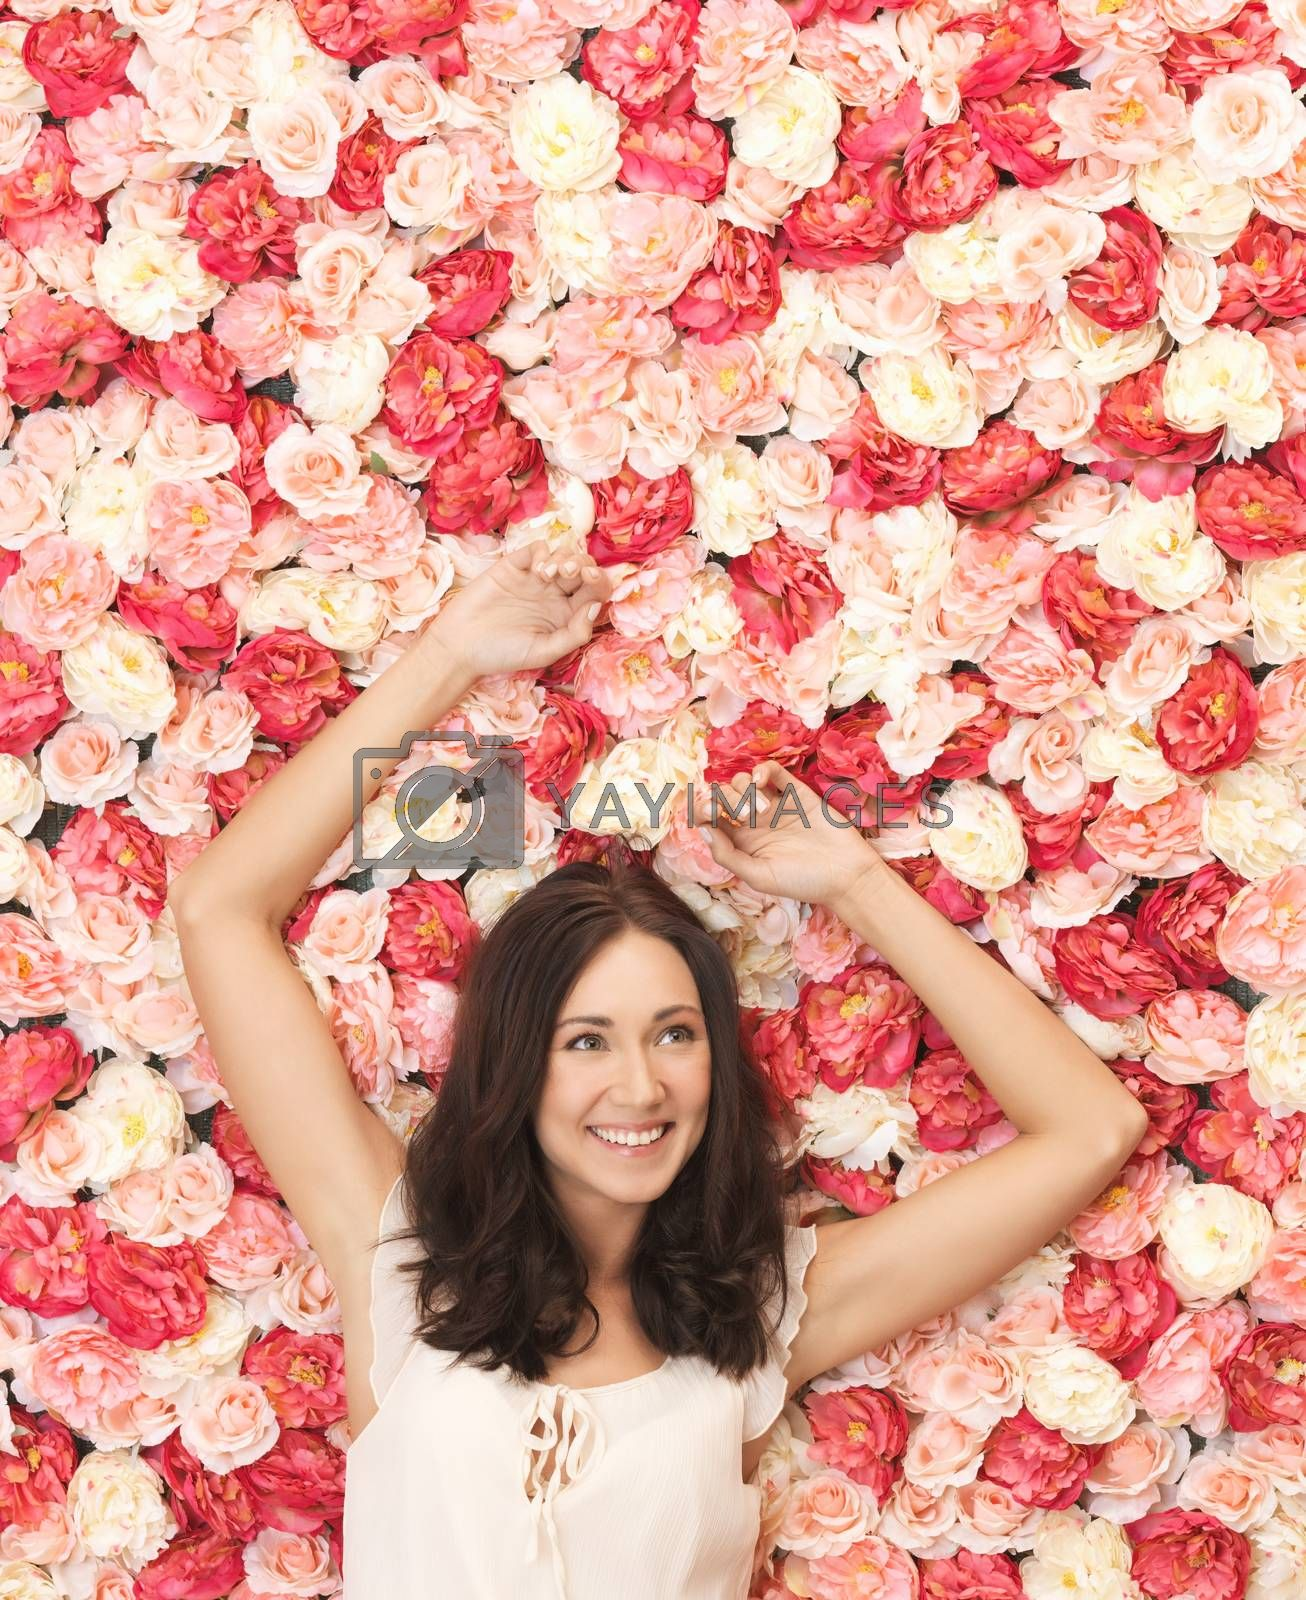 beautiful woman and background full of roses by dolgachov